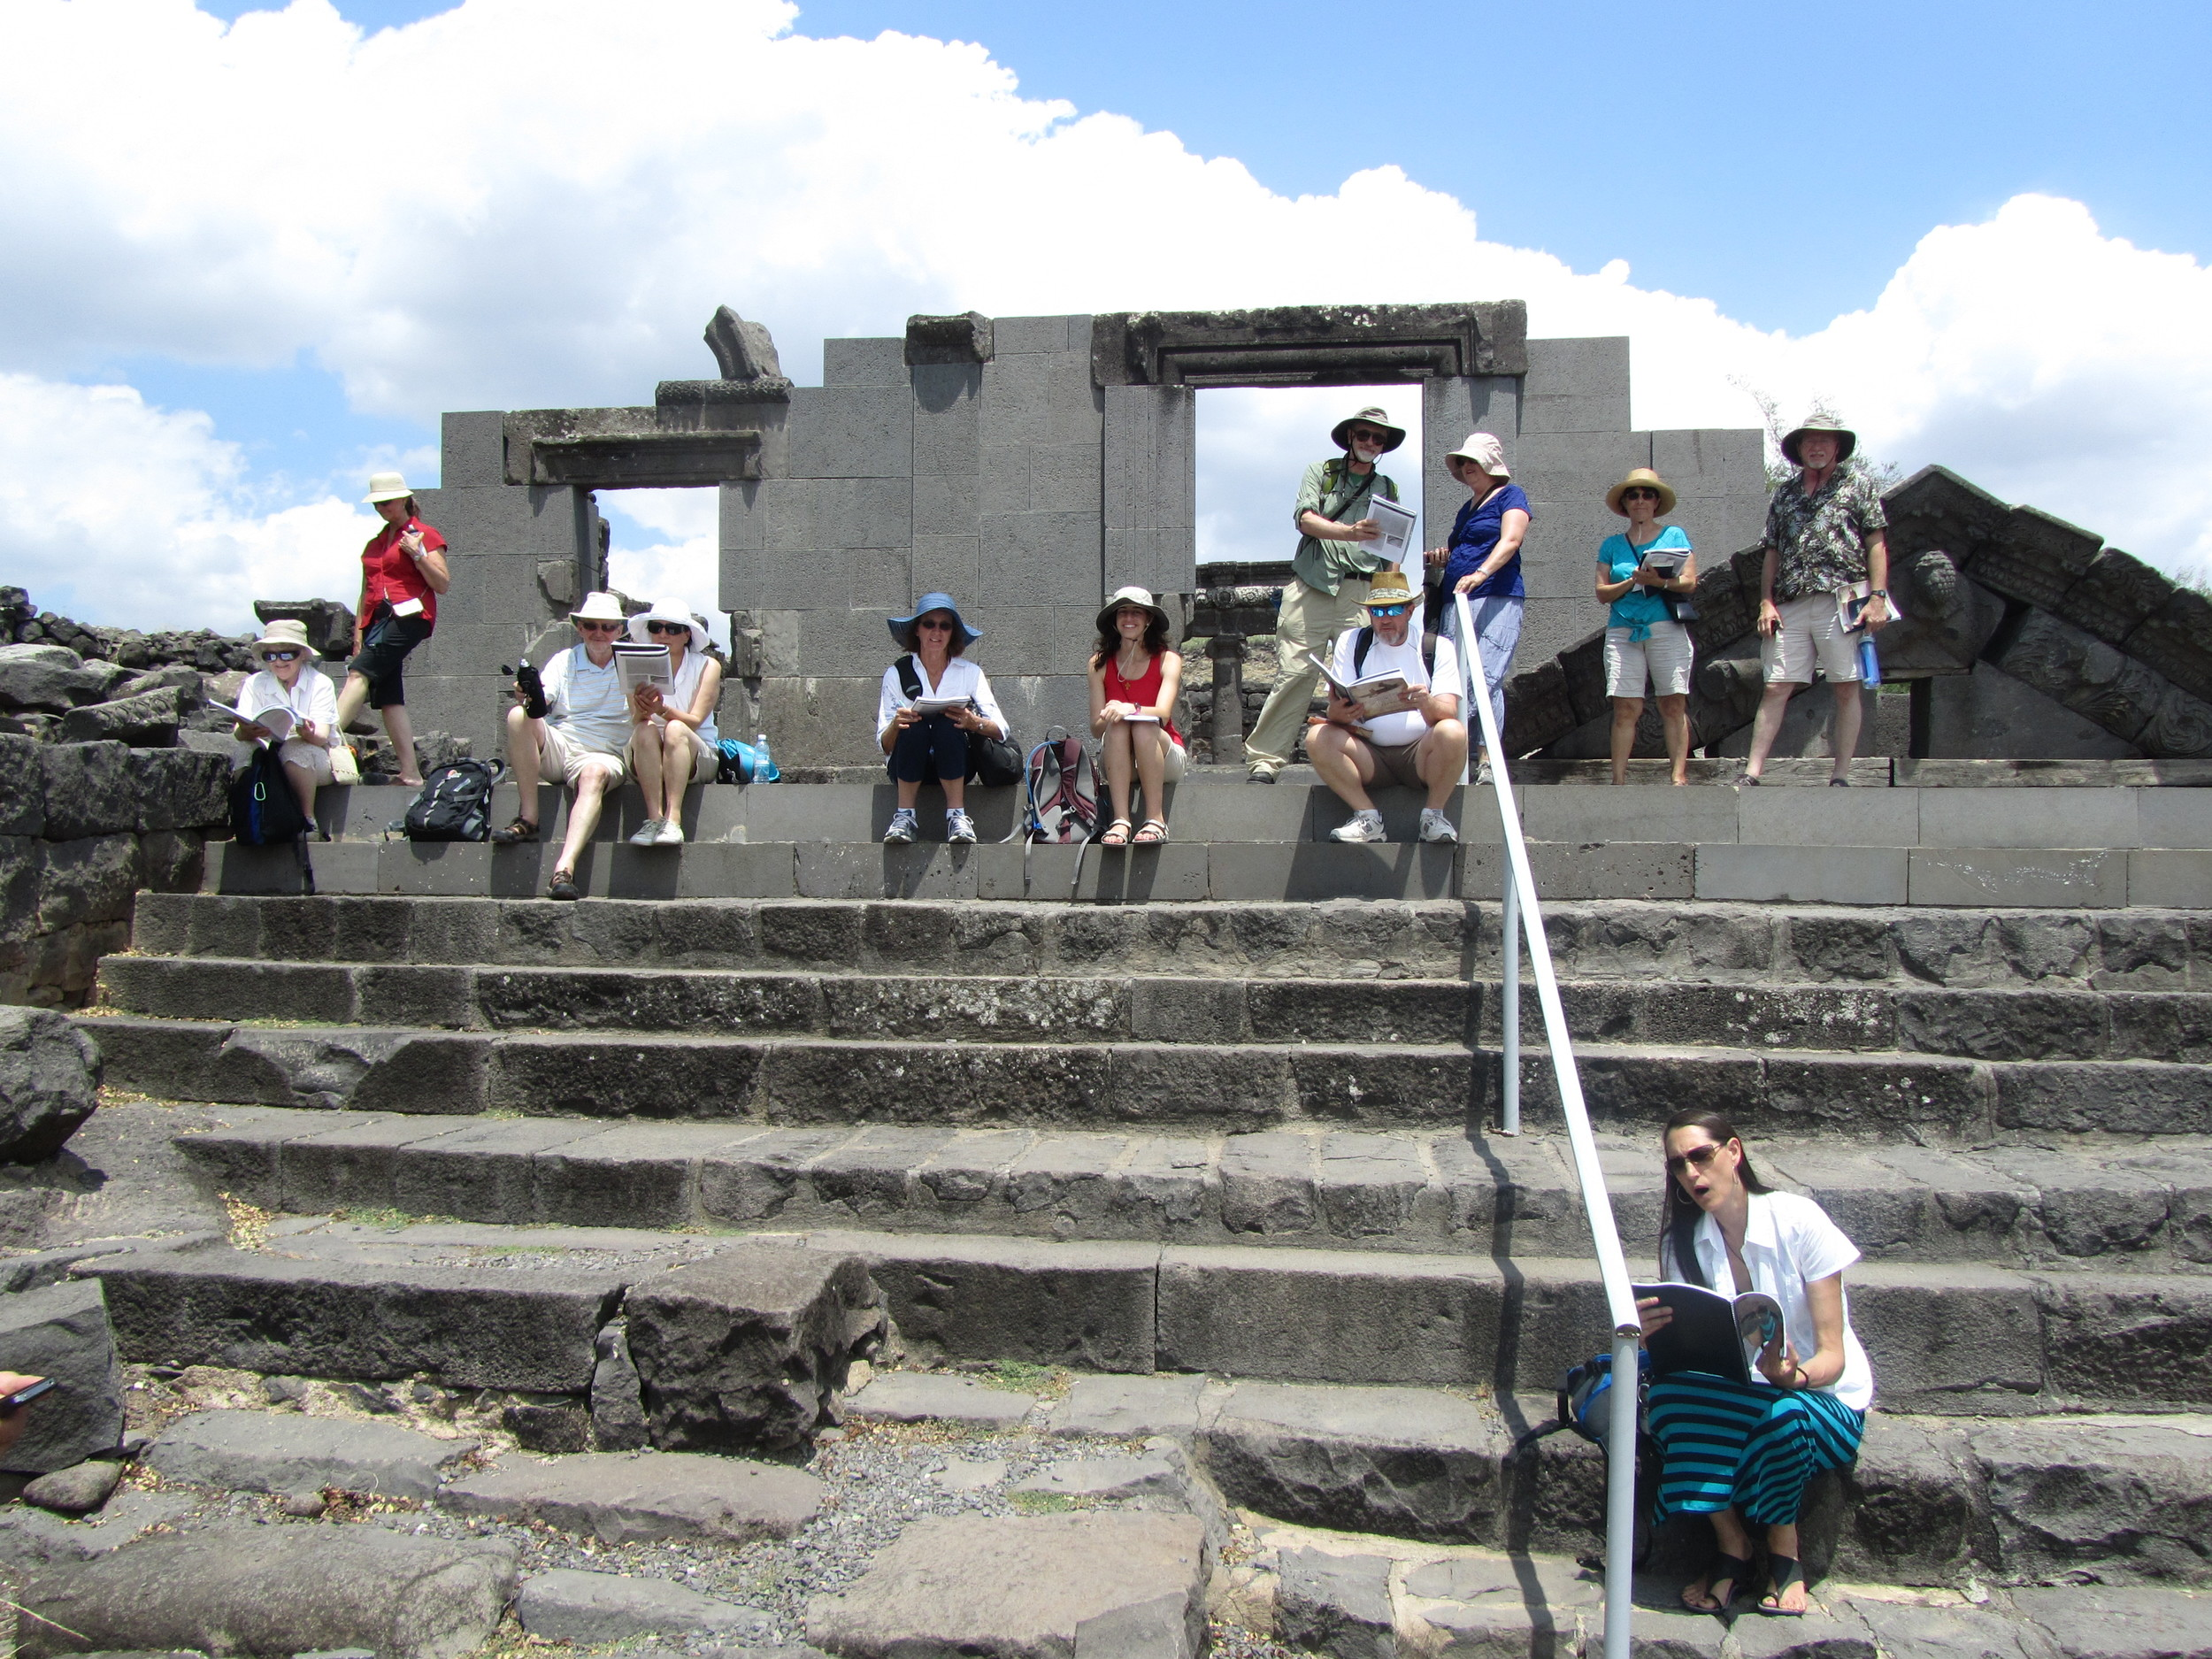 Our group sitting on the front steps of the ancient synagogue of Chorazin